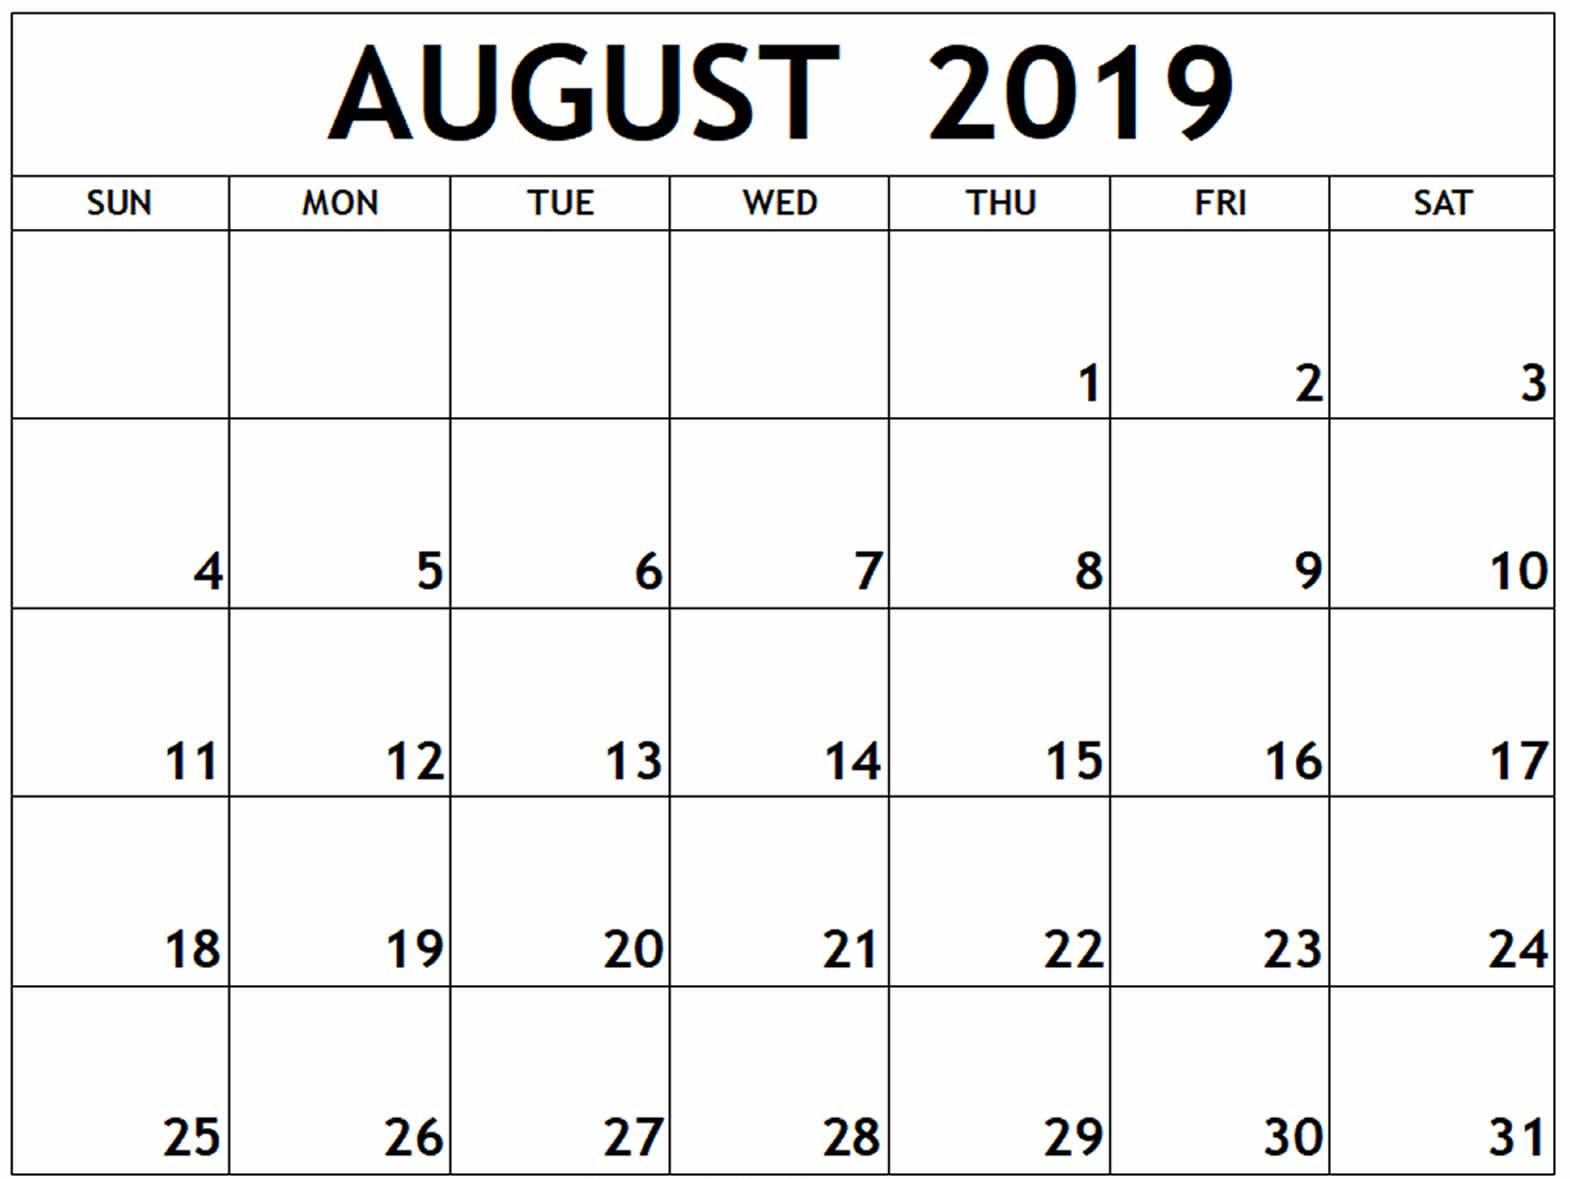 August 2019 Calendar Excel With Blank Printable Template pertaining to August Calendar Template To Type In